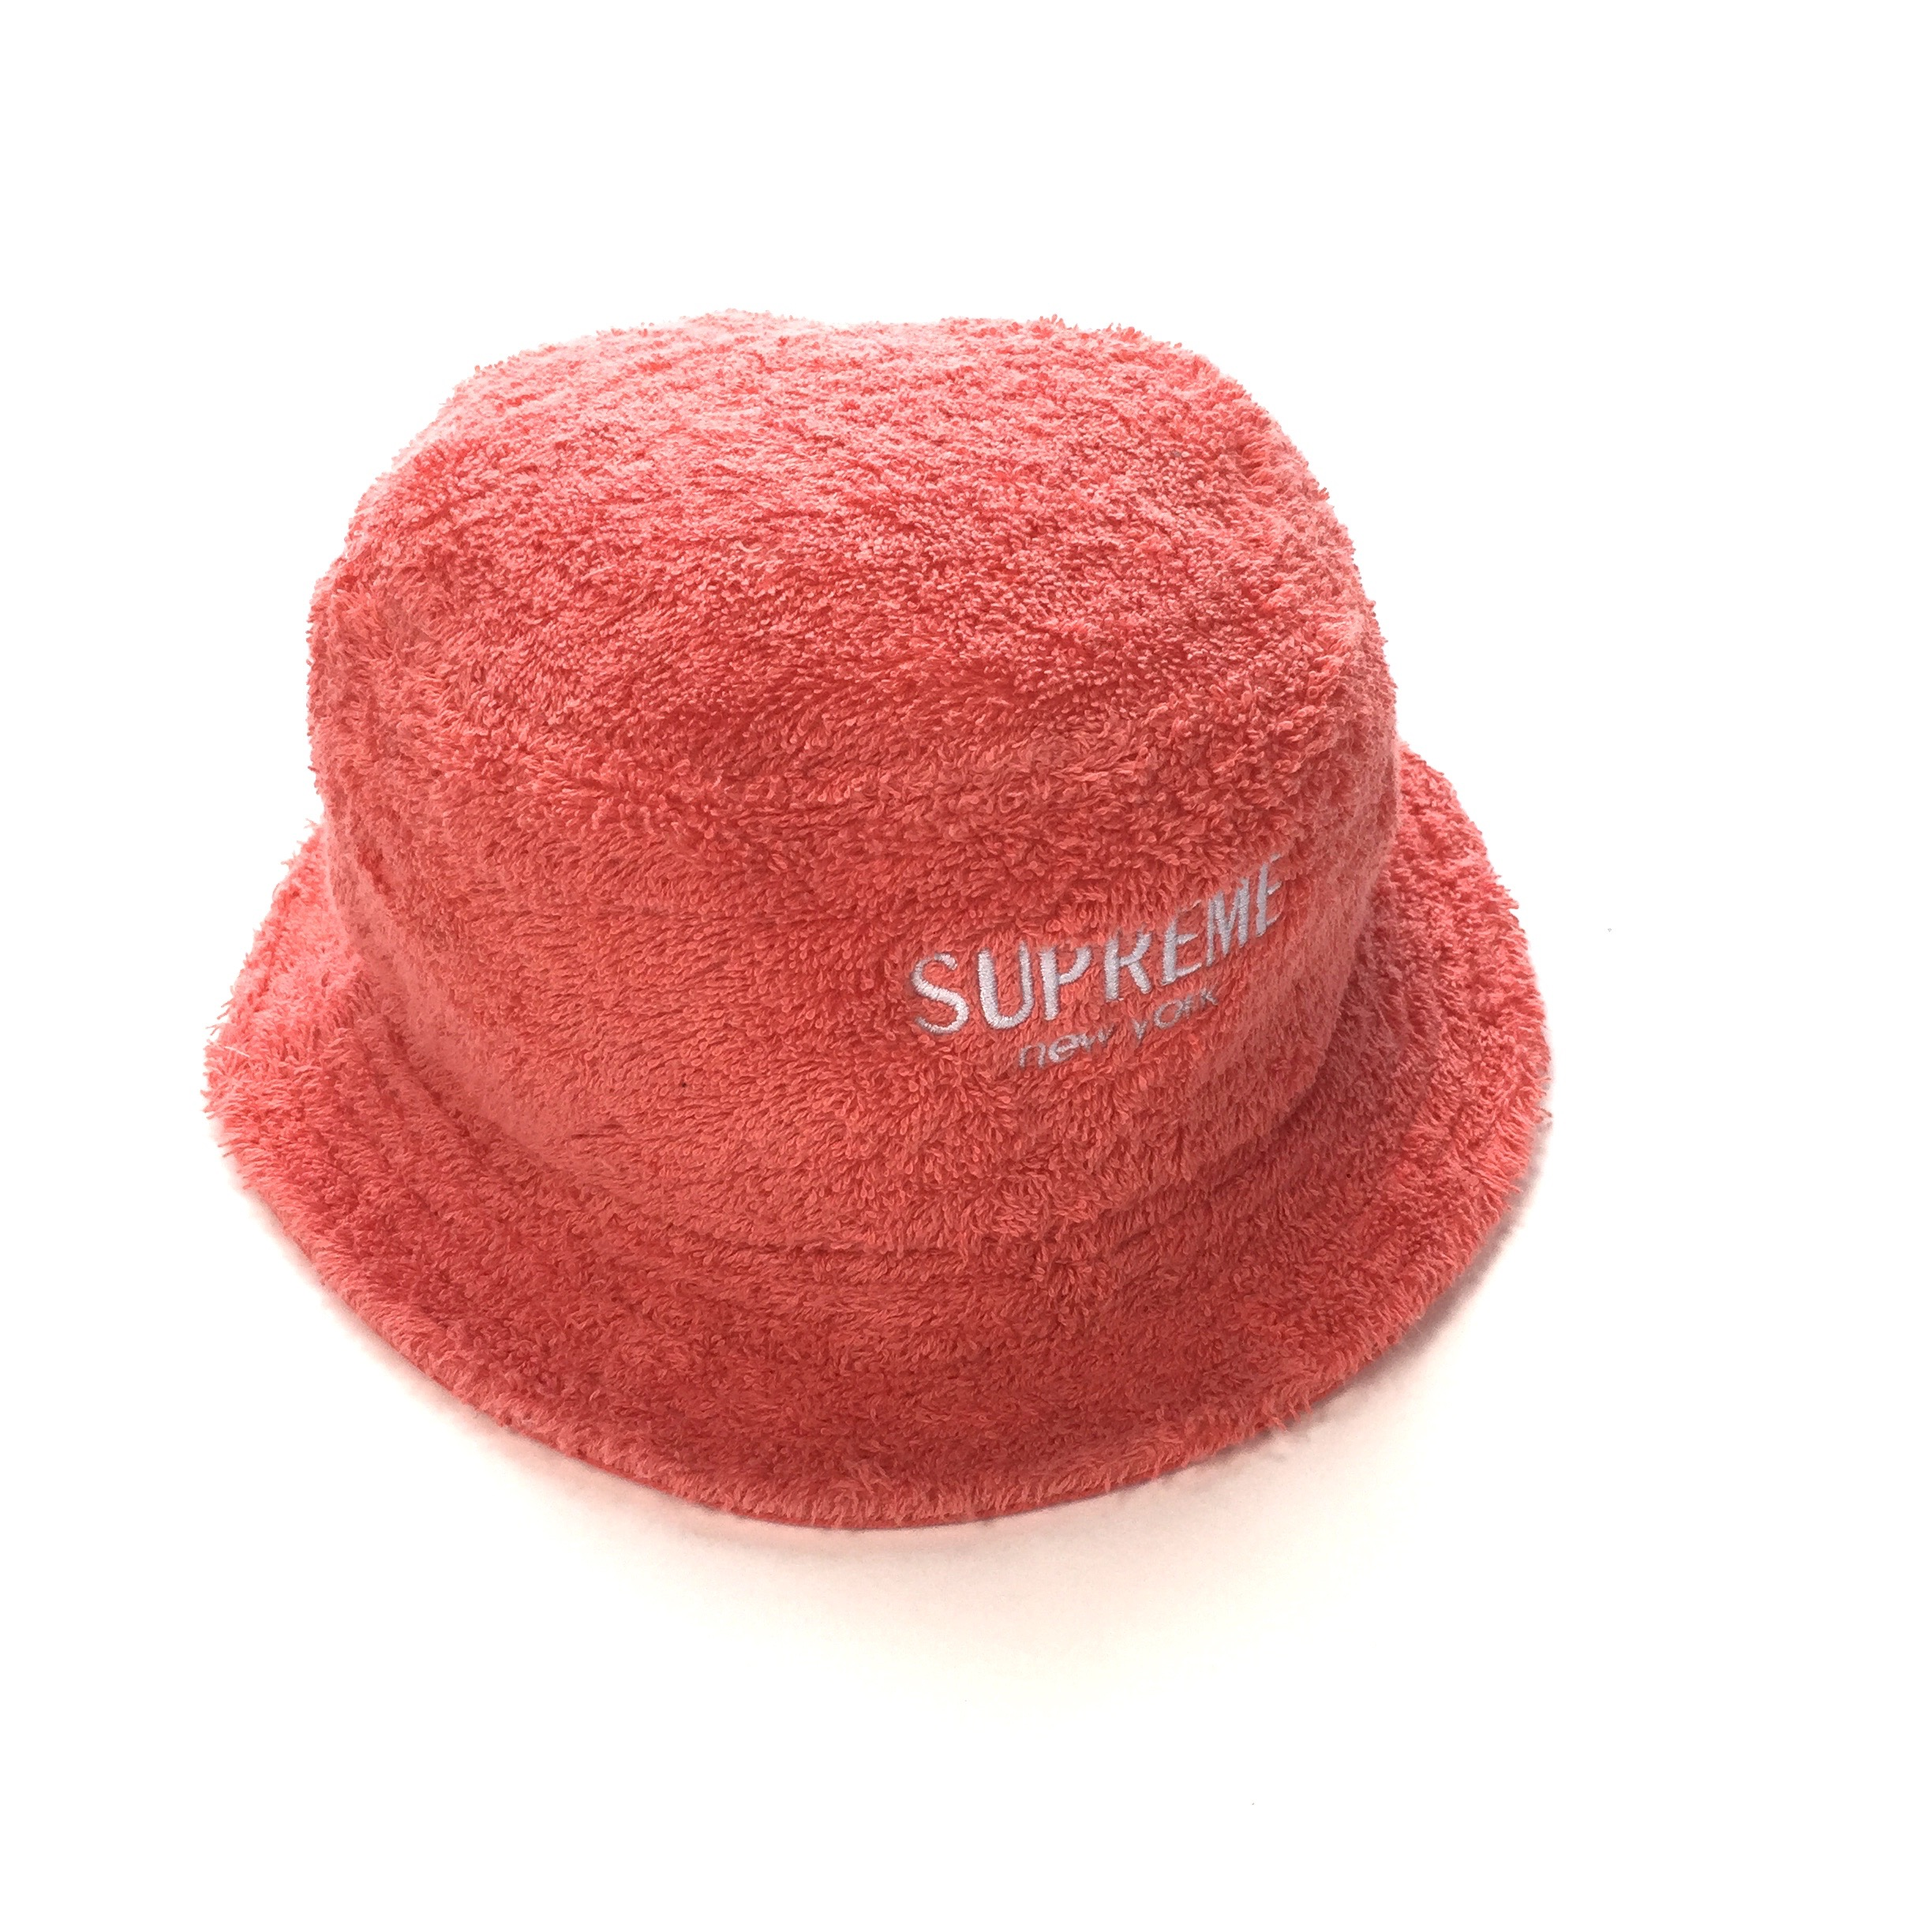 724affd4 Supreme Coral Logo Terry Crusher Bucket Hat Ds | Grailed